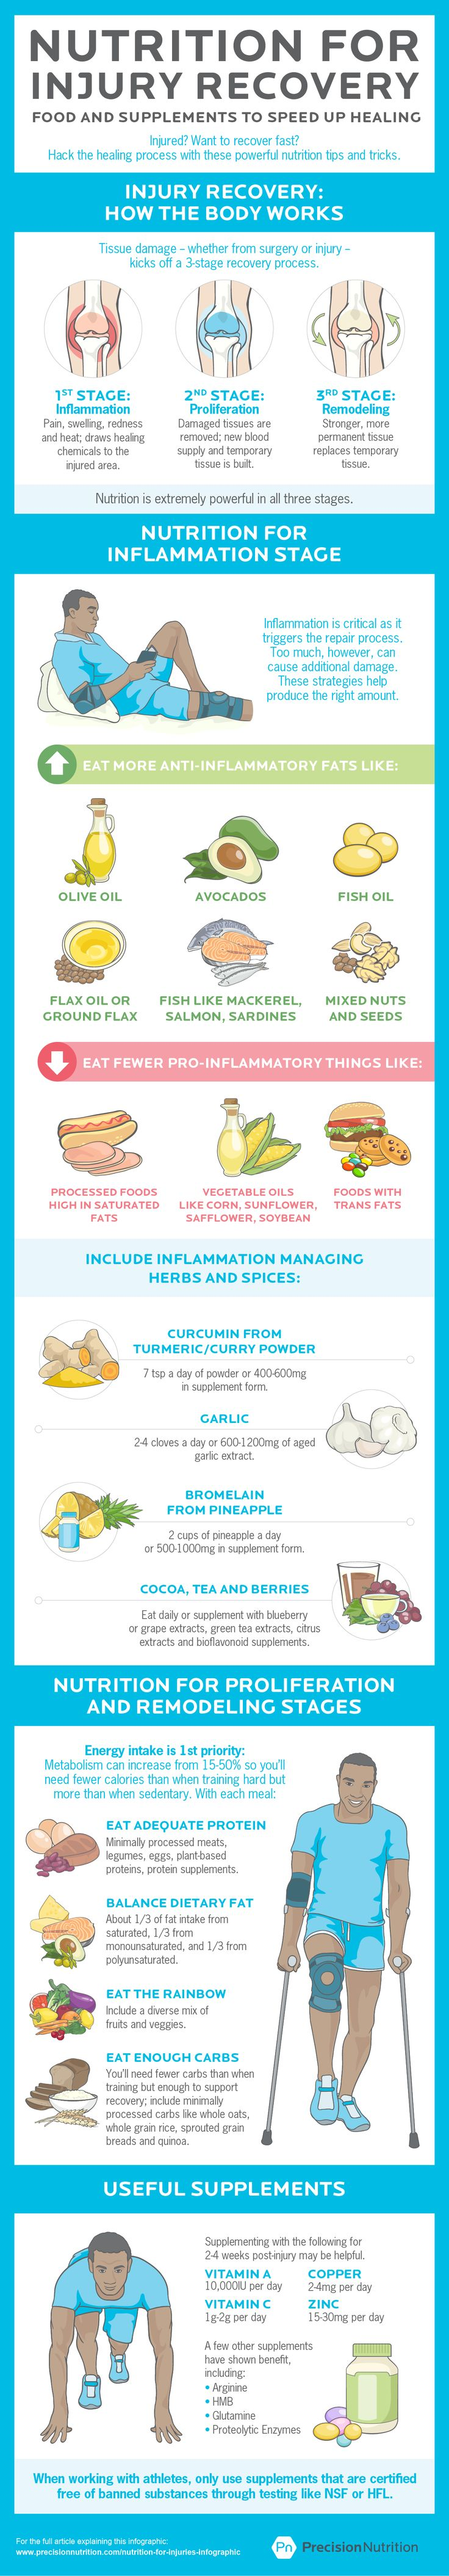 Simple Hacks To Heal Injuries With Food (Infographic